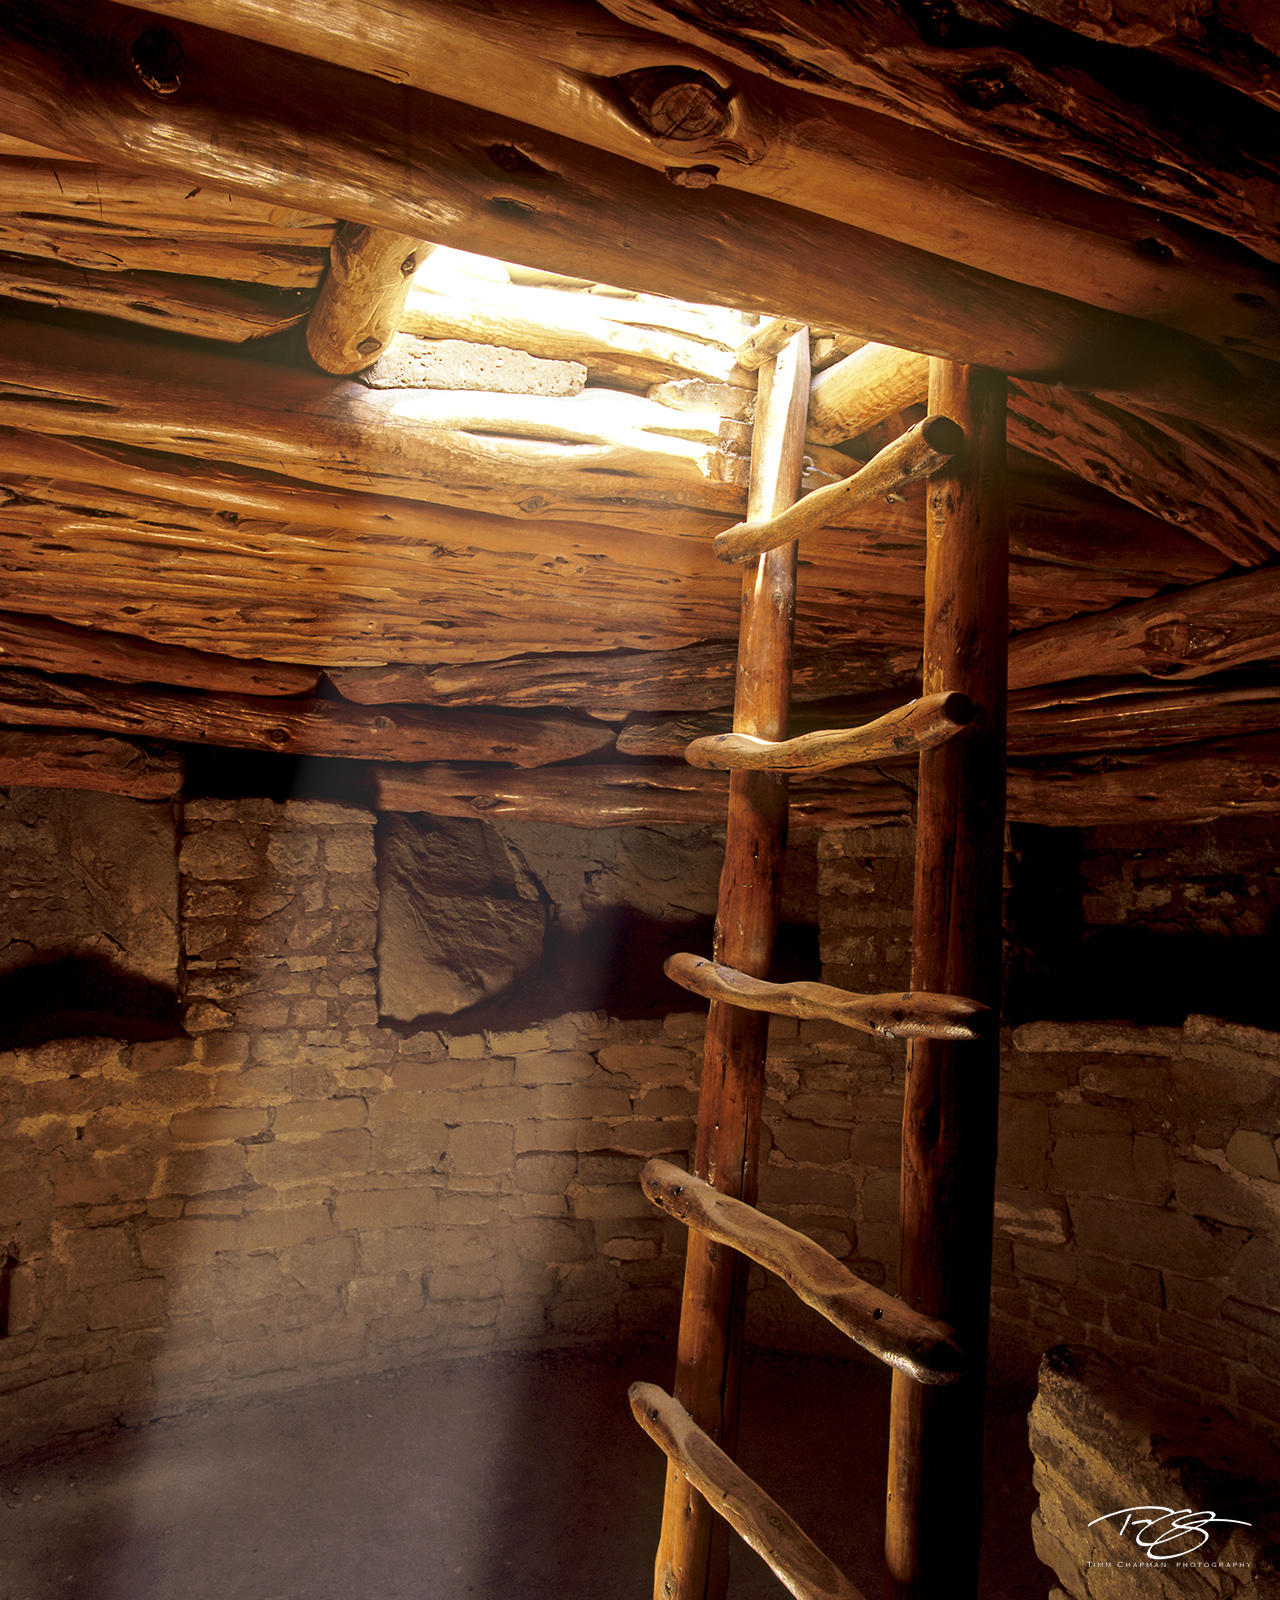 Colorado, Mesa Verde, Spruce Tree House, Kiva, Light Beam, Ladder, Cliff Dwelling, Ceremonial, Anasazi, The Ancient Ones, Ancestral Puebloans, ruins, sacred, navajo, indian, photo